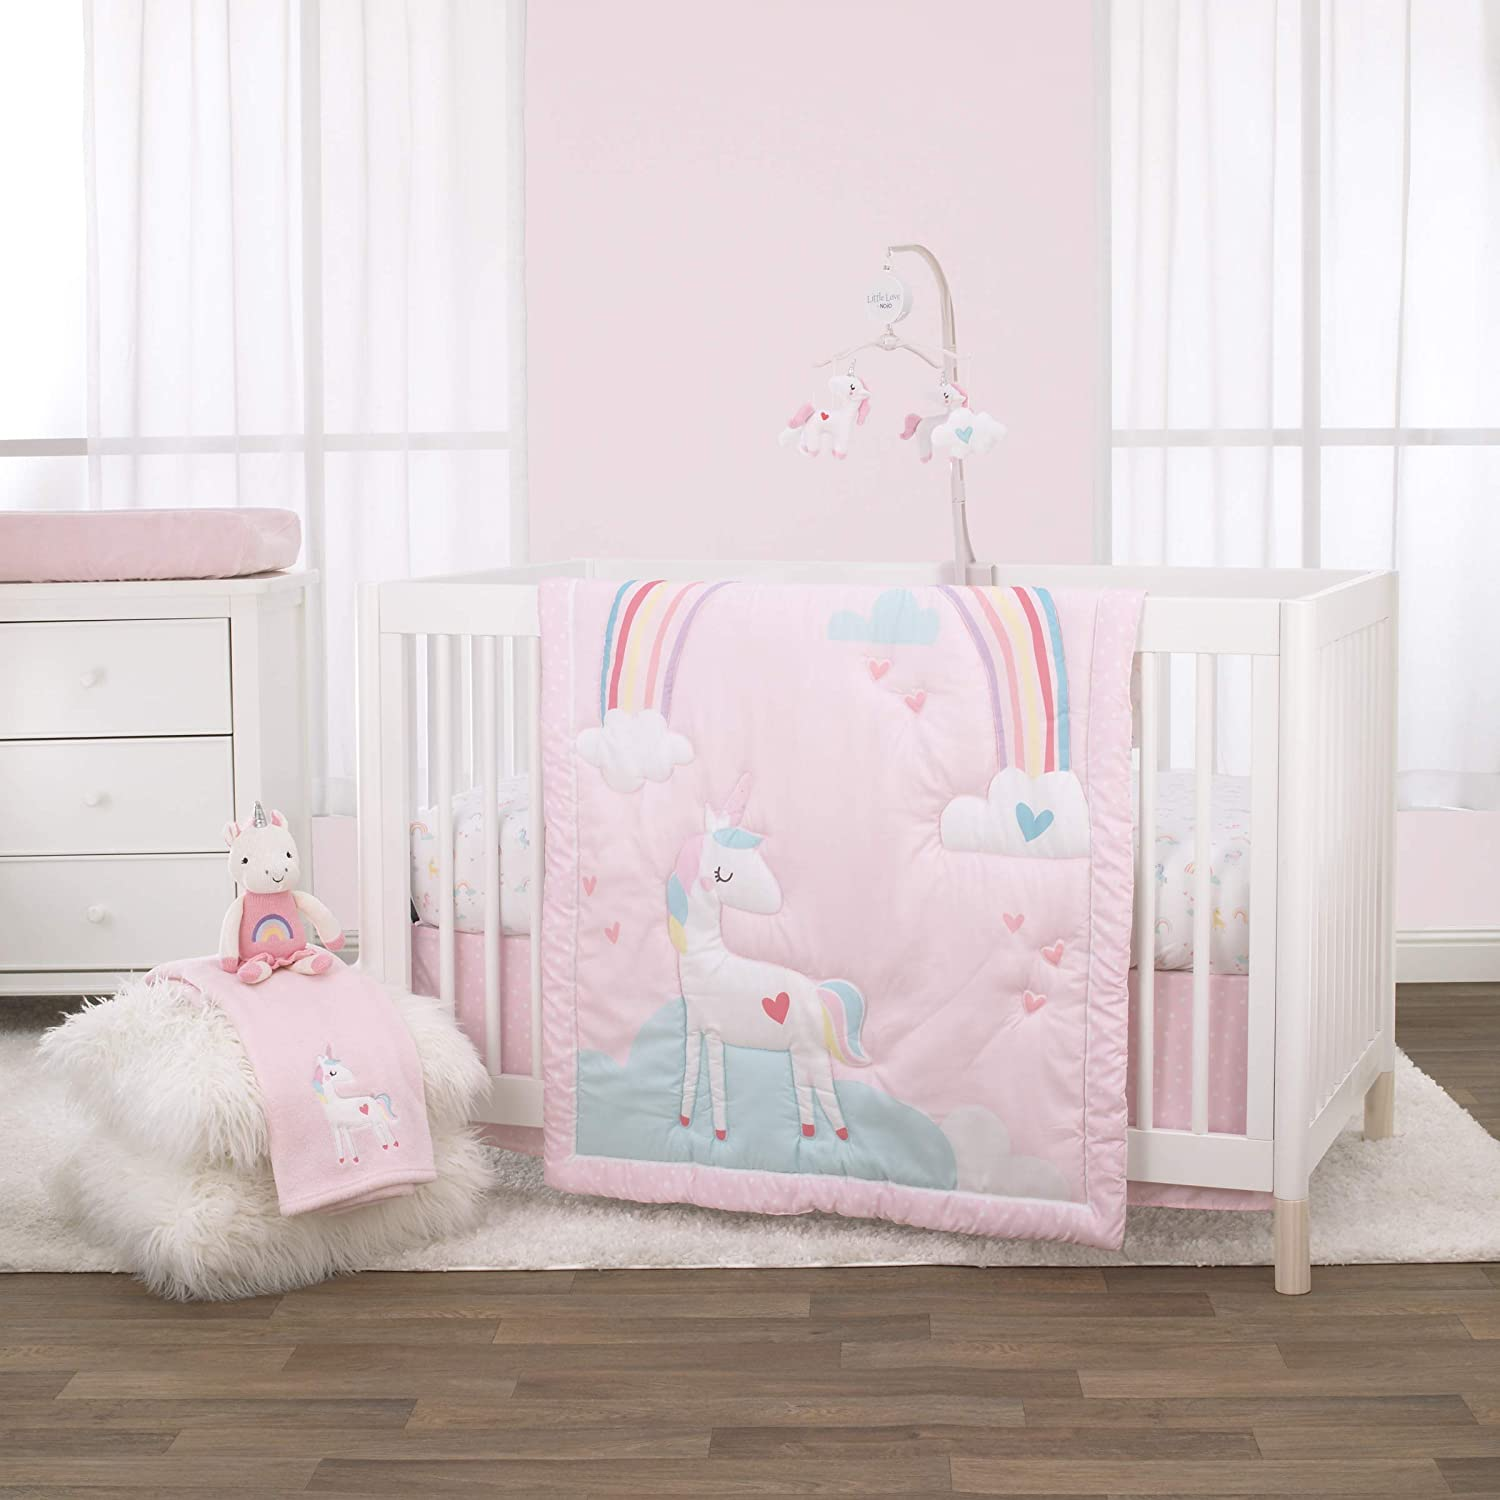 NoJo 3 Piece Crib Bedding Set and Dust Ruffle, Rainbow Unicorn, Pink/Aqua/Yellow/White